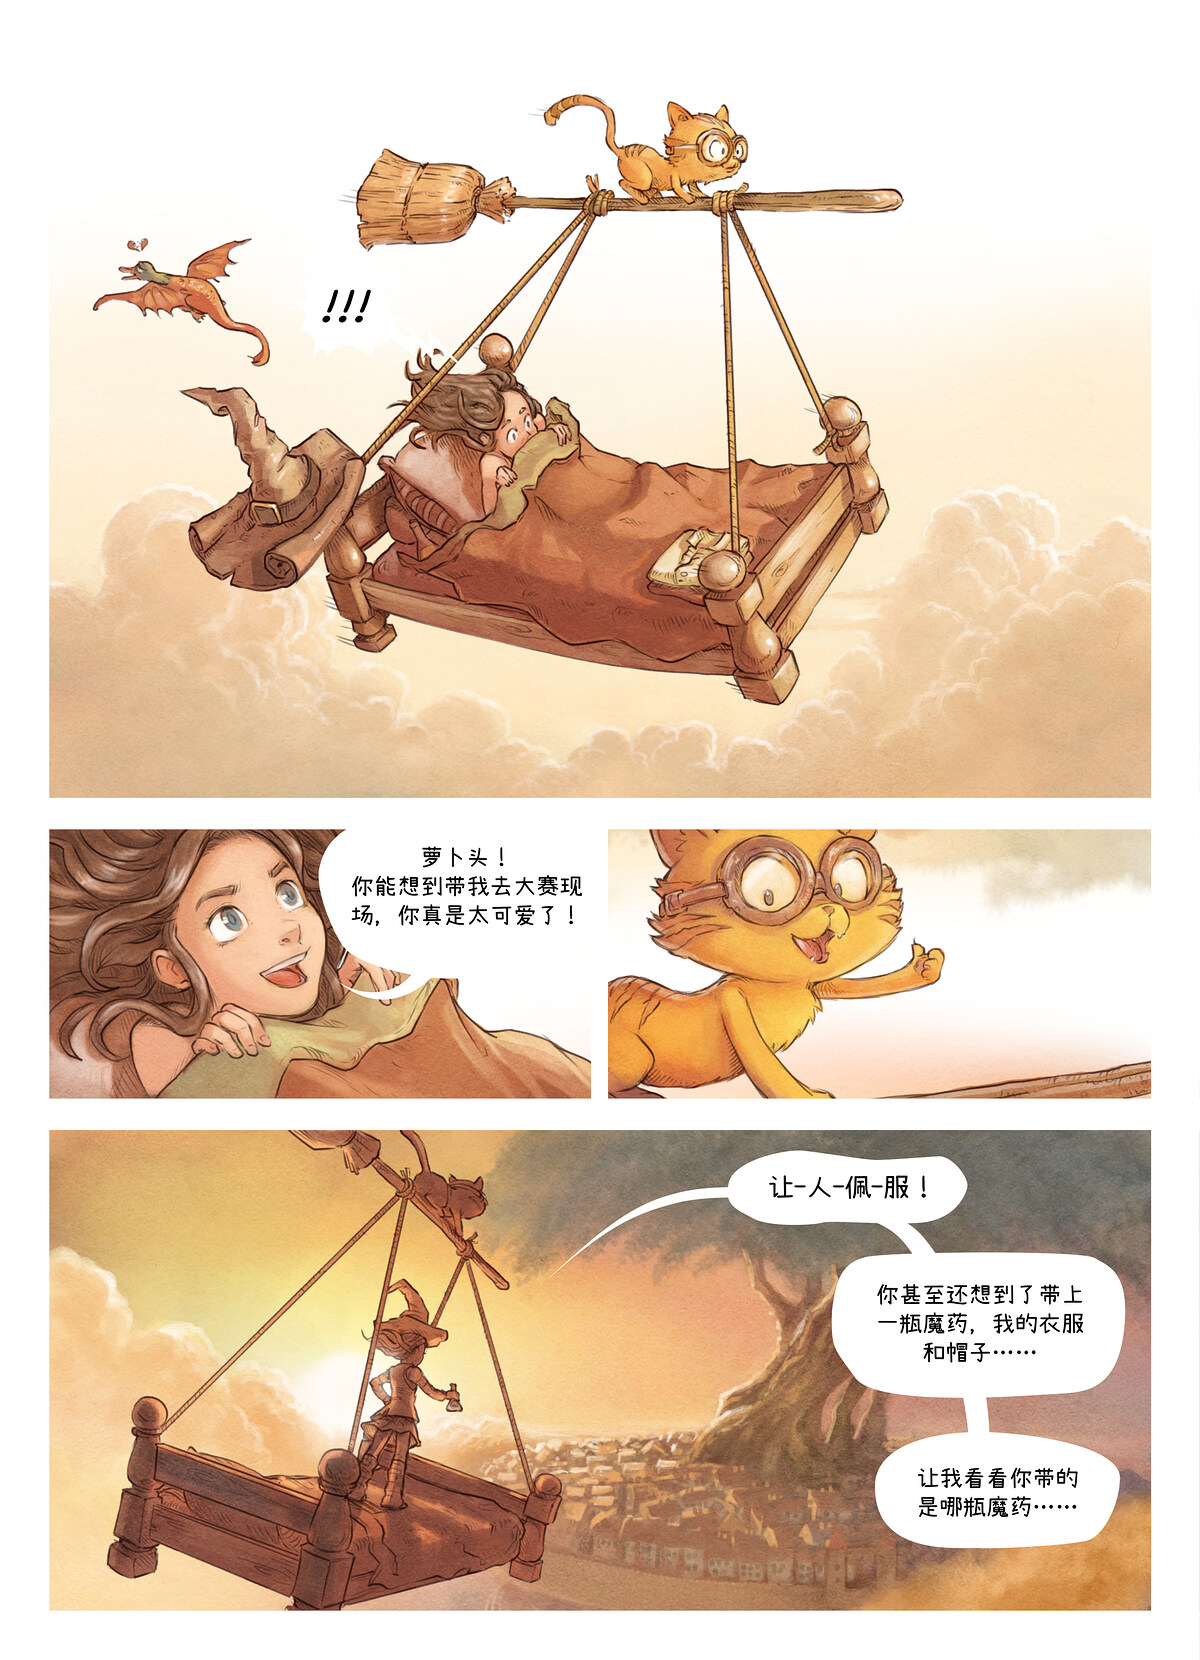 A webcomic page of Pepper&Carrot, 漫画全集 6 [cn], 页面 2